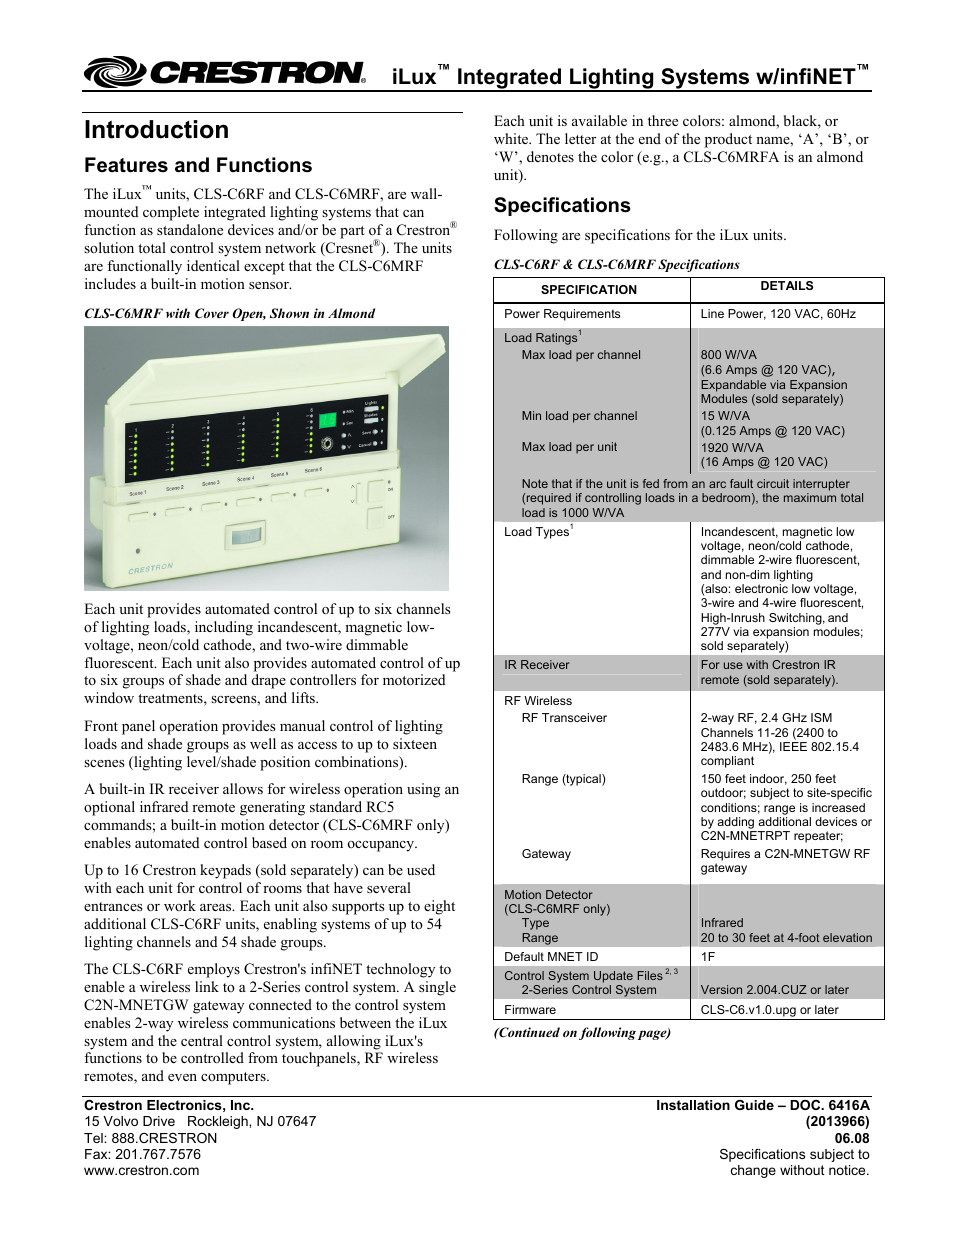 Crestron Electronic Ilux Cls C6rf User Manual 6 Pages Also For Iluxx Lighting Support C6mrf